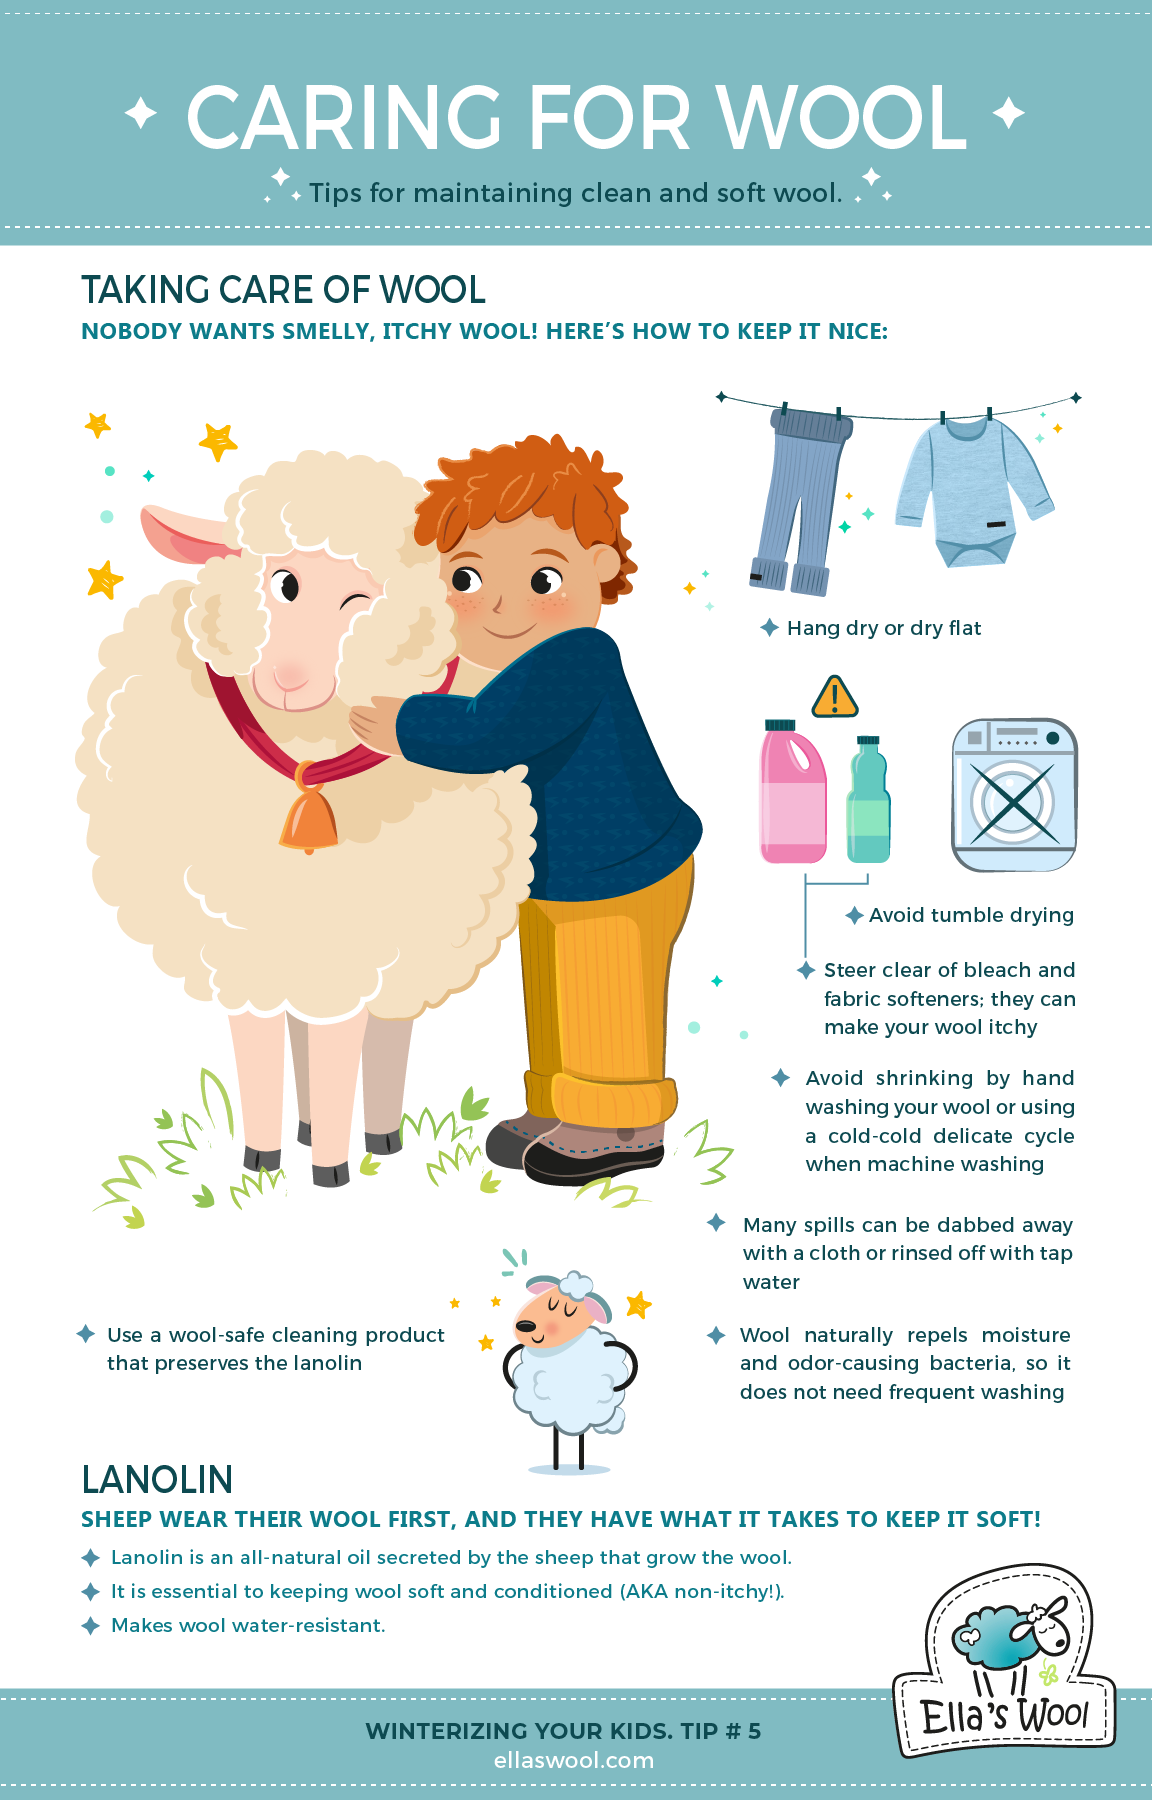 How to care for your wool (infographic)